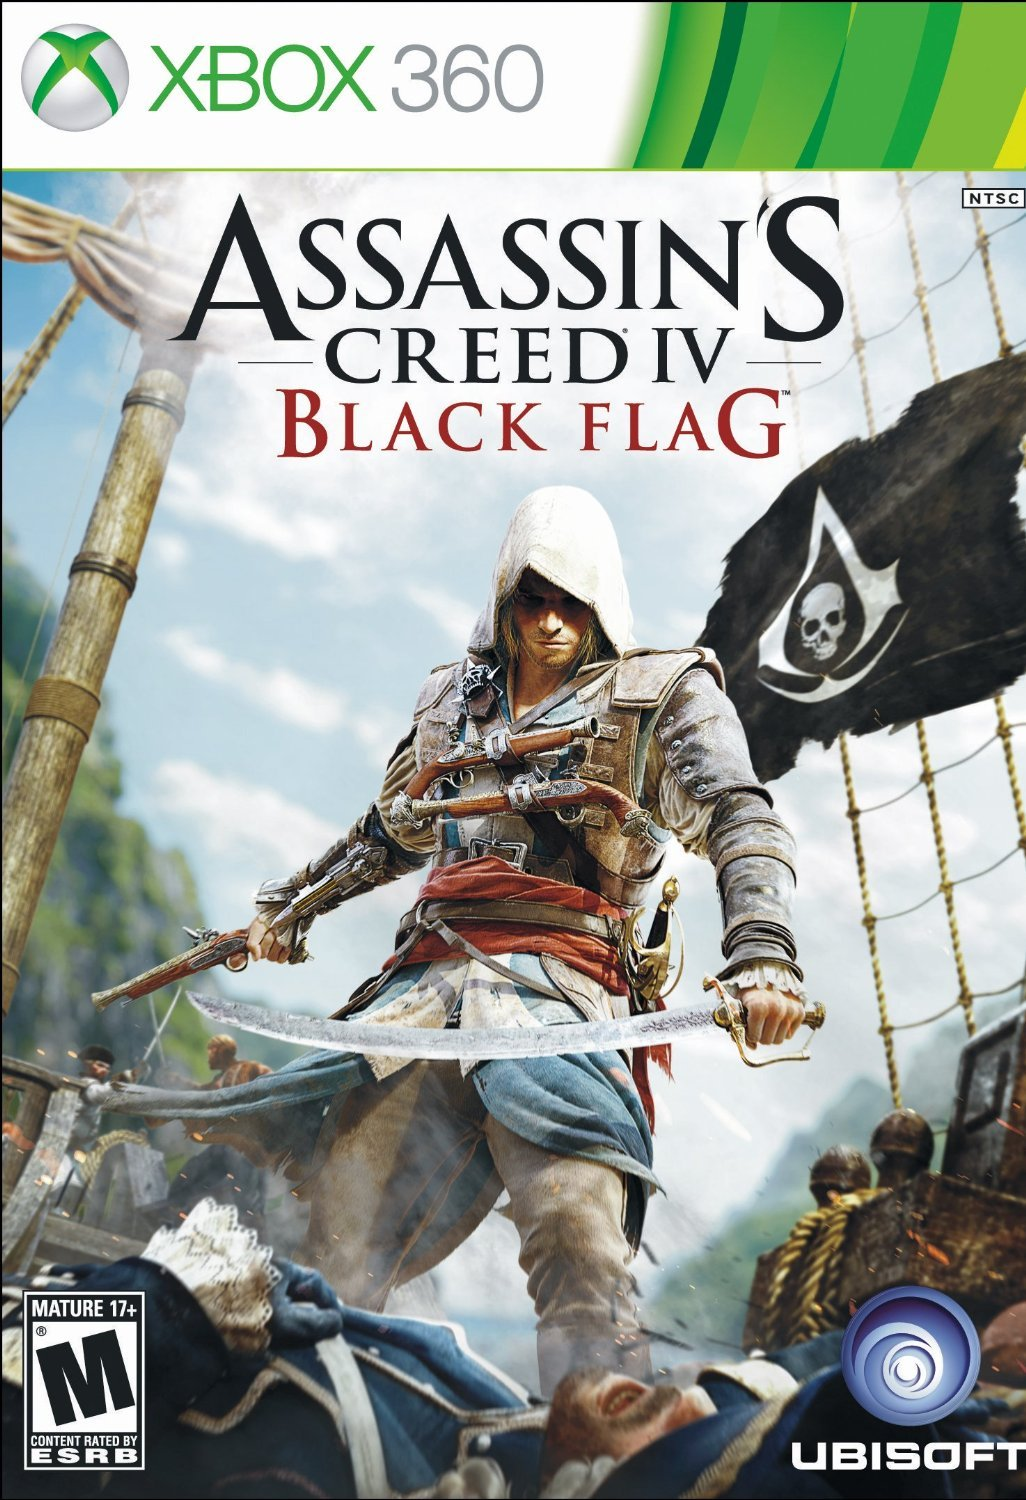 Assassin's Creed IV Black Flag Xbox 360 Physical Game Disc US